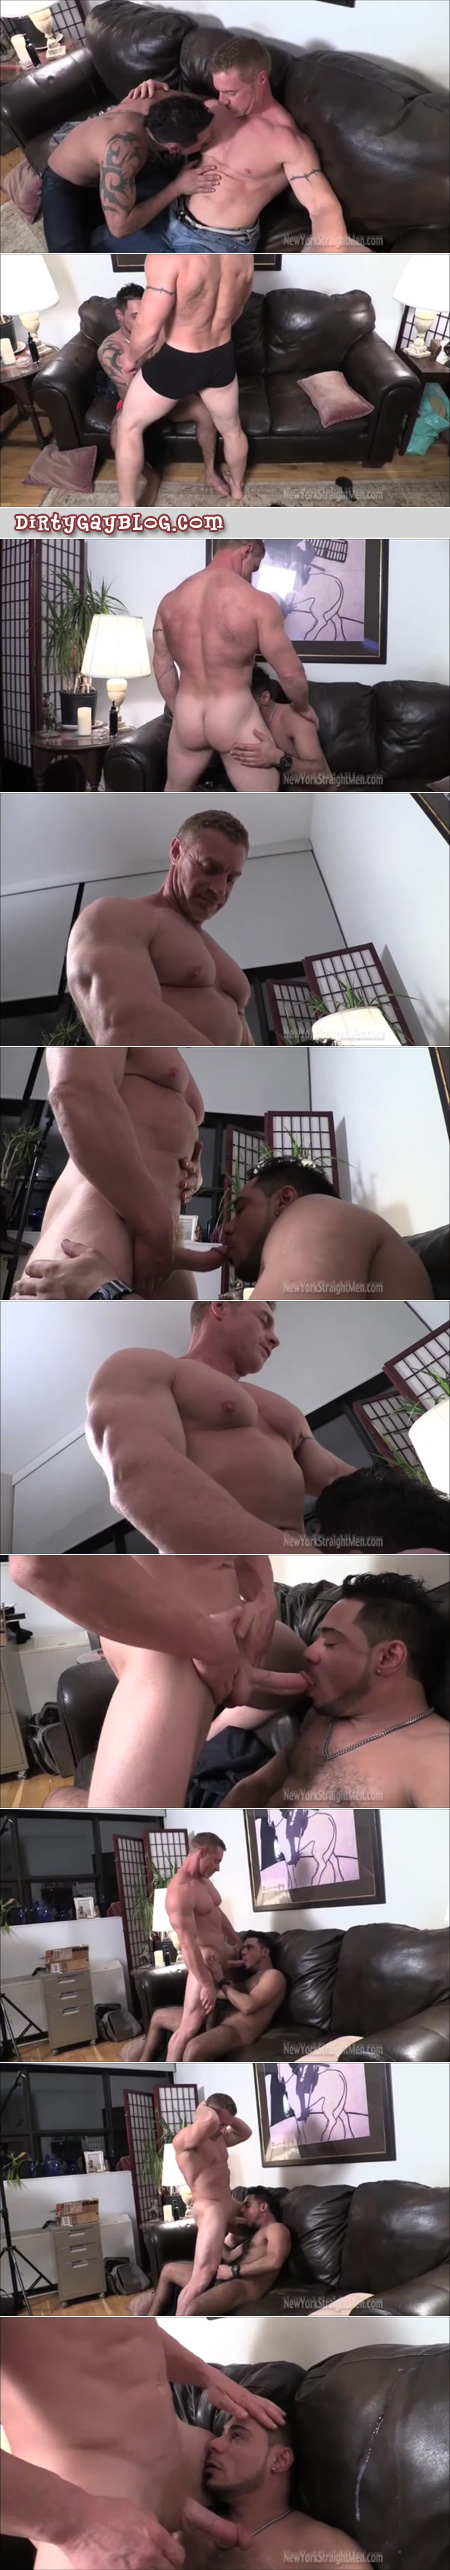 Straight redheaded bodybuilder getting his dick sucked by another guy.